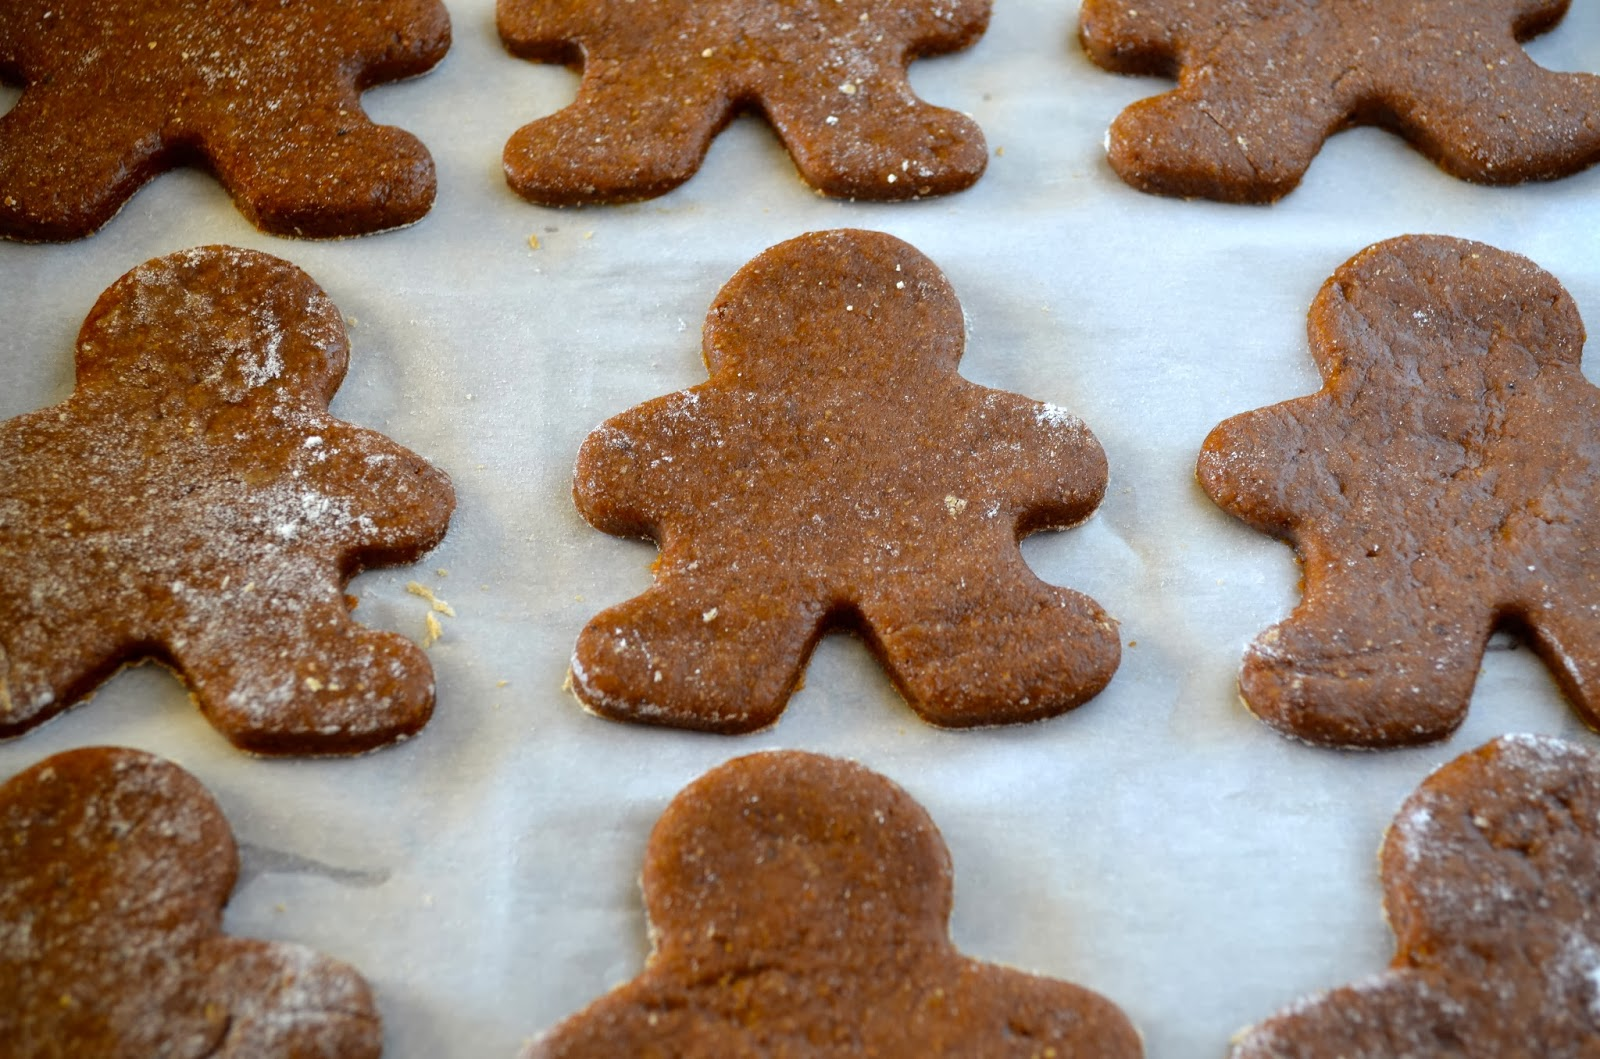 ... of Christmas Gifts (+ Soft Vegan Gingerbread Cookies) / A Little Baker